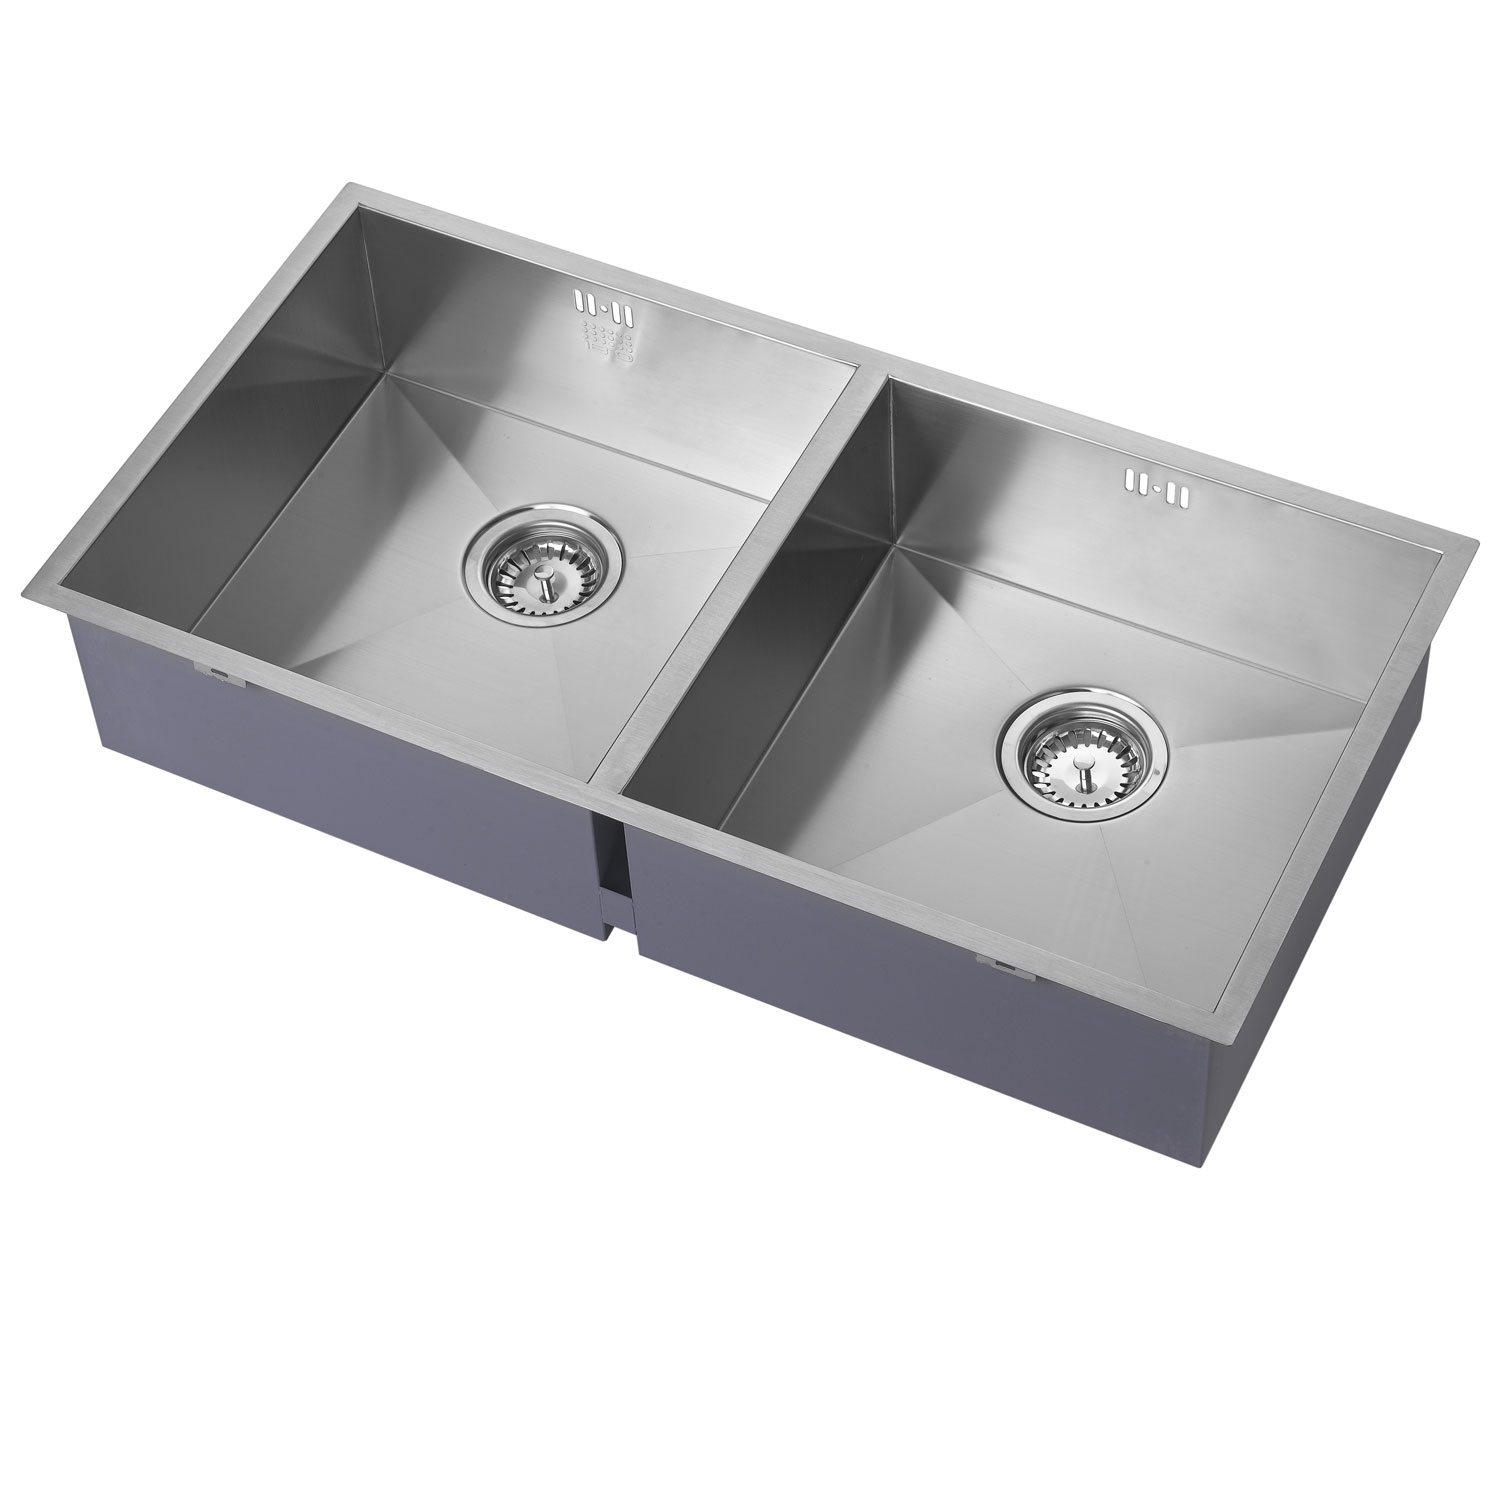 The 1810 Company Zenduo 400/400U 2.0 Bowl Kitchen Sink - Stainless Steel-0